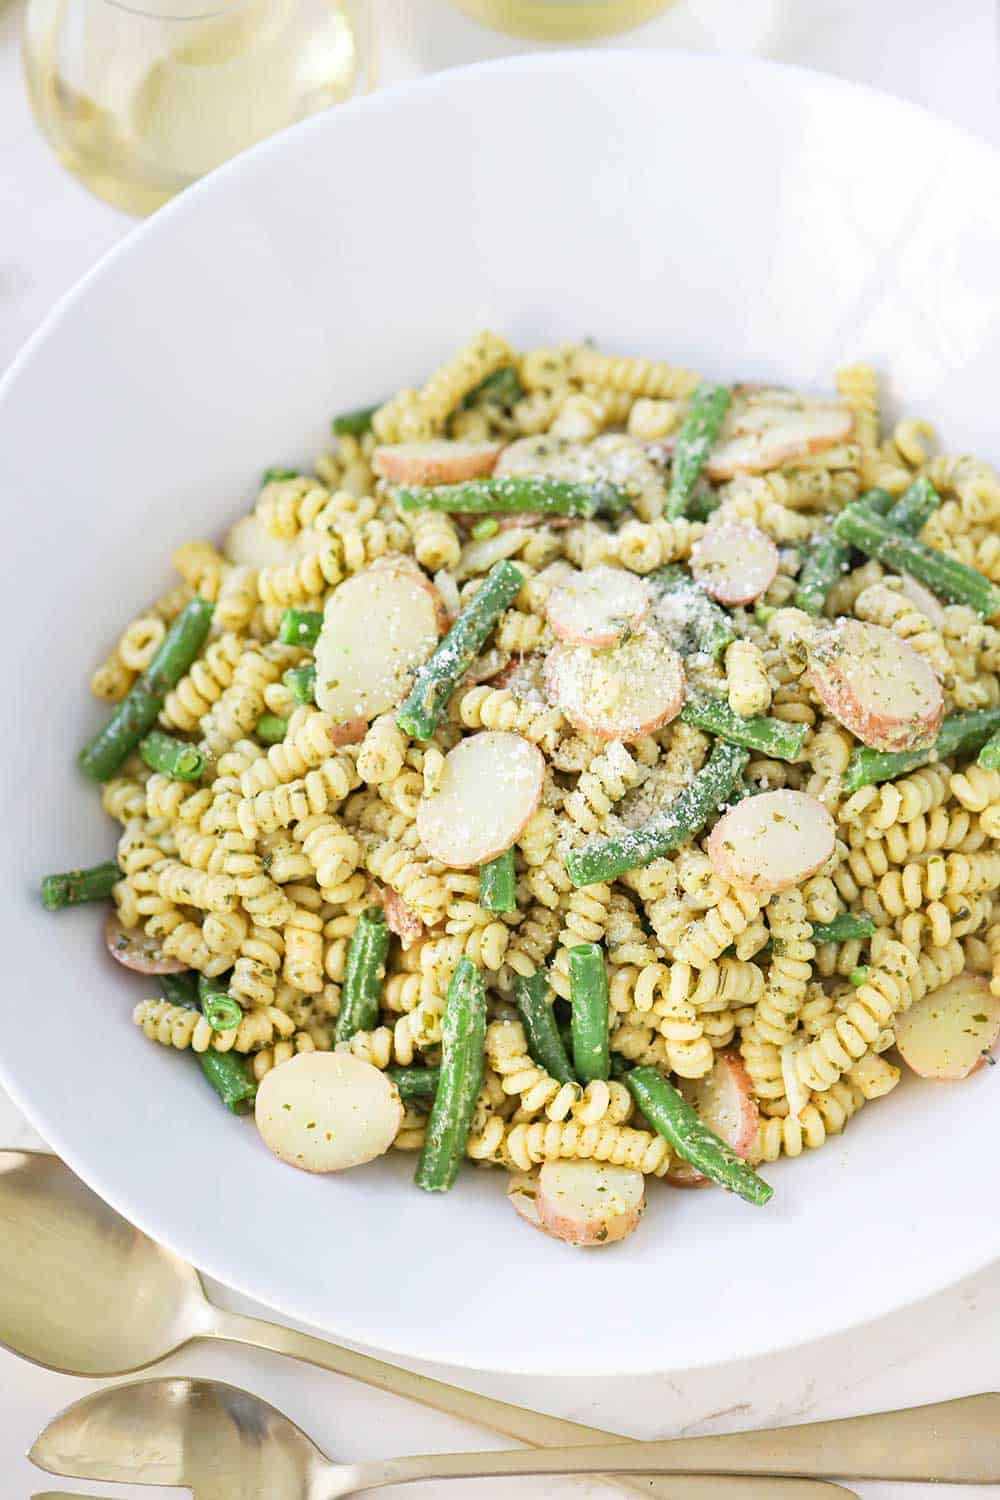 A white bowl of pesto pasta with potatoes and green beans.